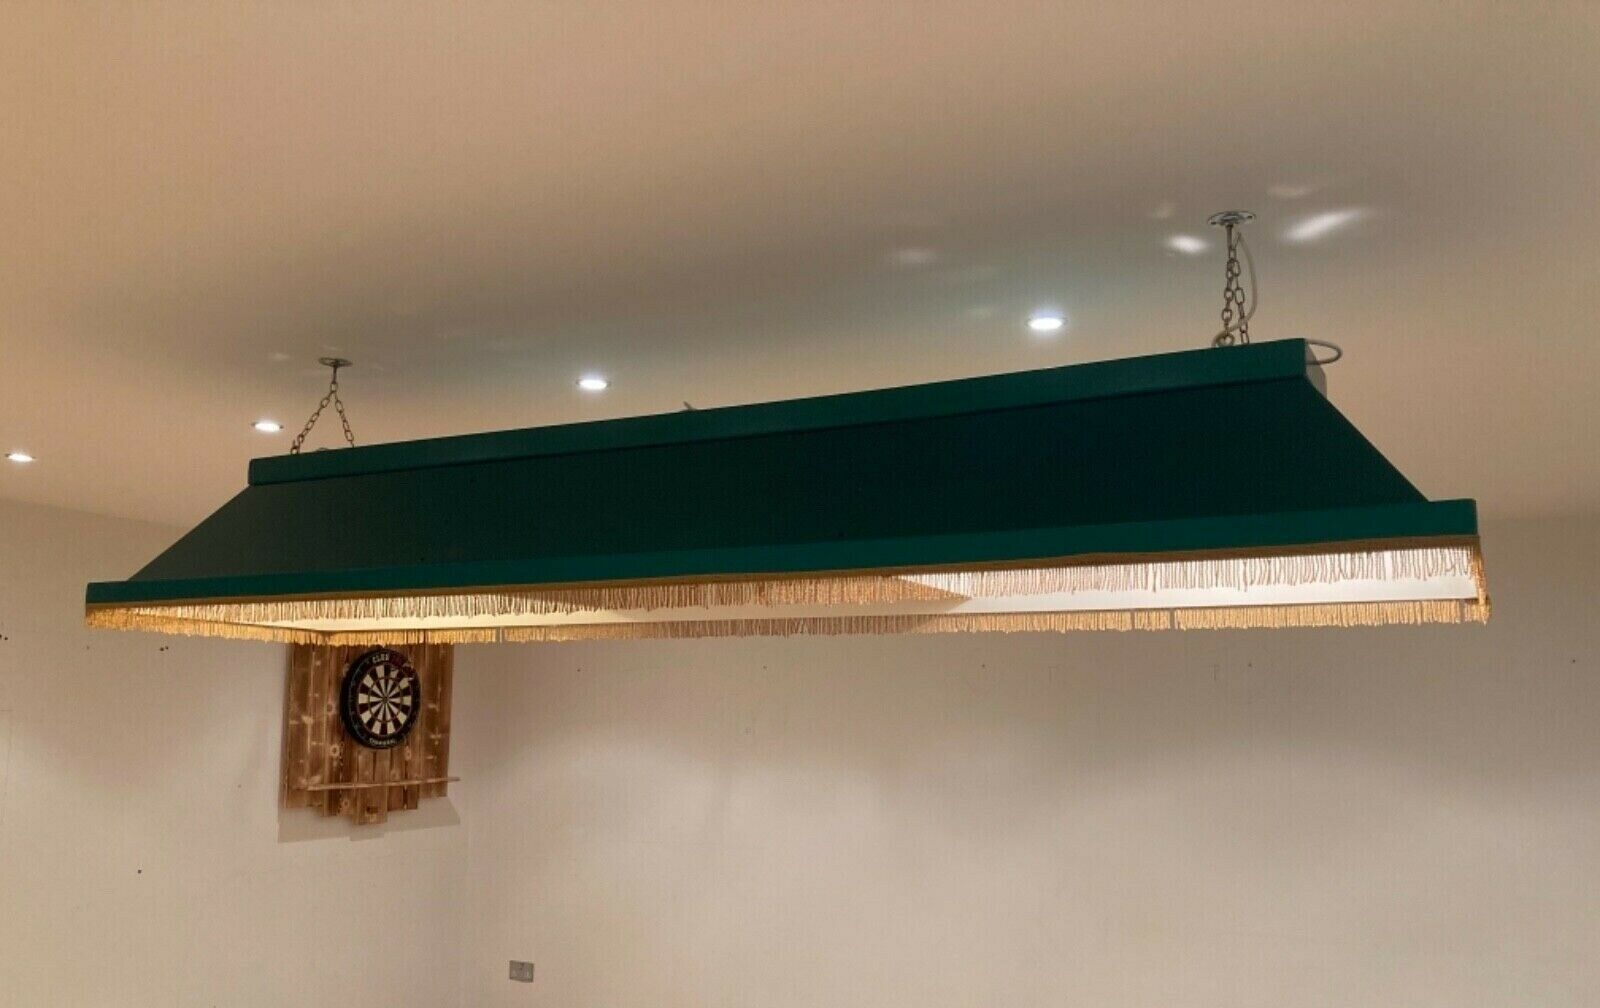 snooker table lights - very good condition. Available now. Comes with fixings